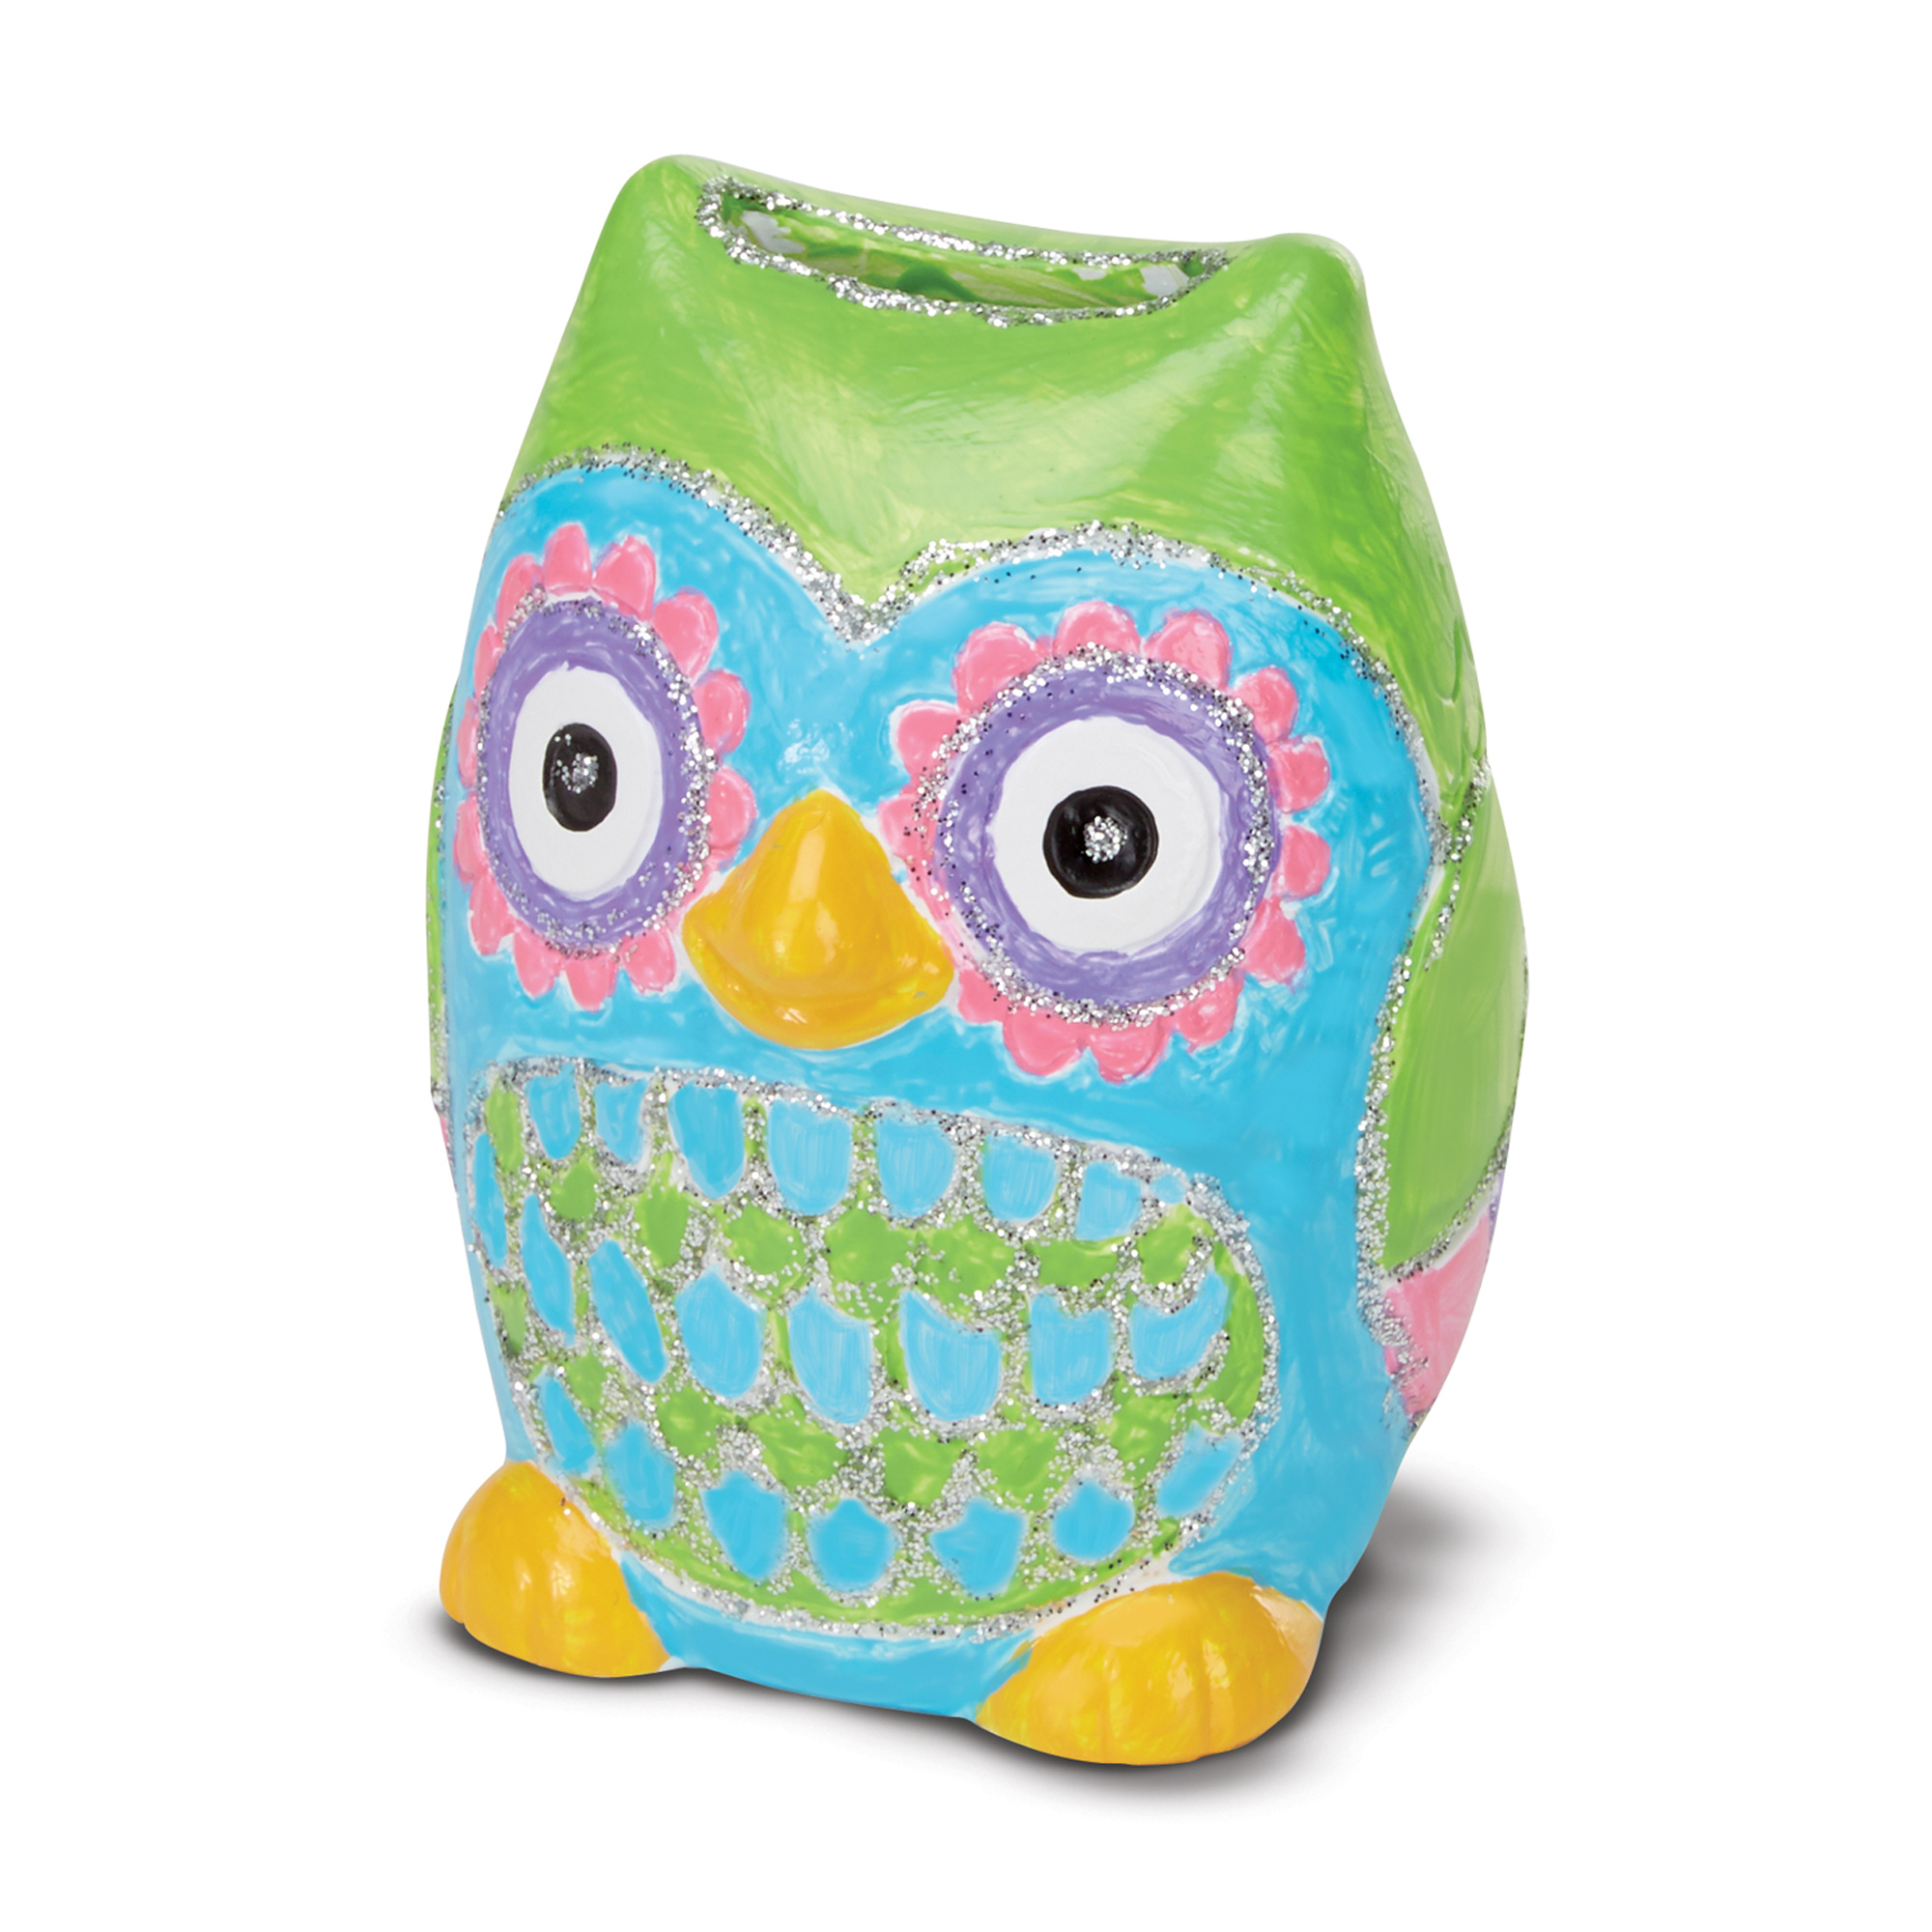 DecorateYourOwn Owl Bank